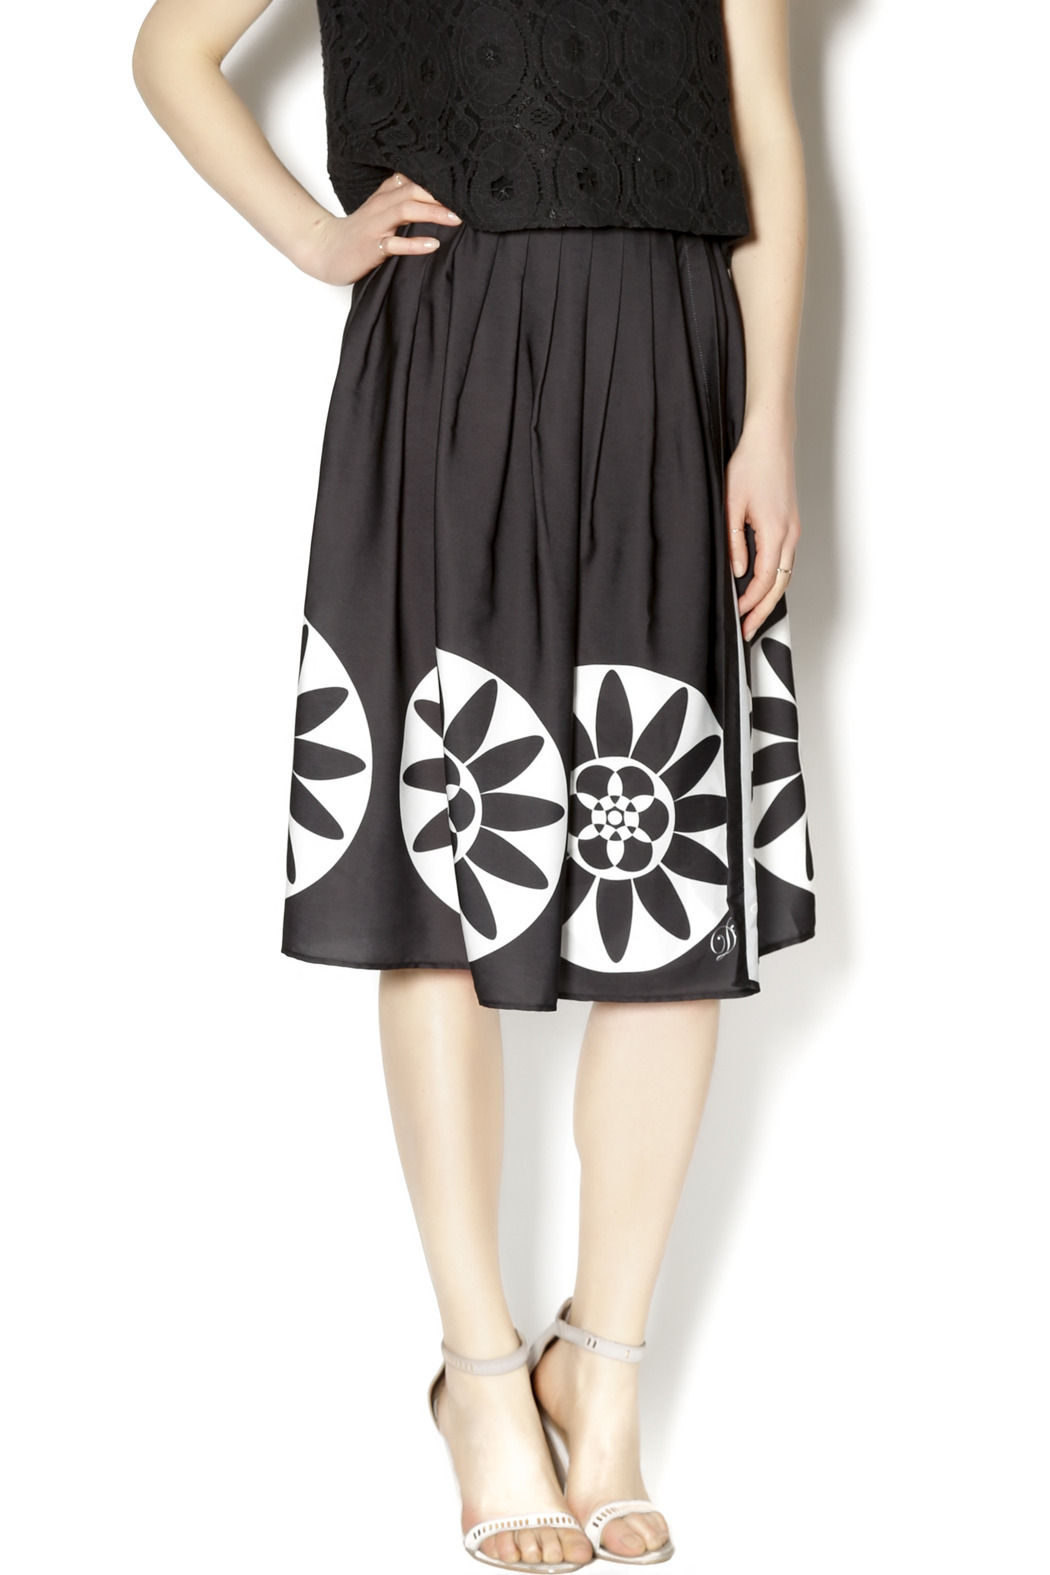 0bc515203a02 DESIGUAL Pleated Circle Skirt from Florida by i Tesori — Shoptiques